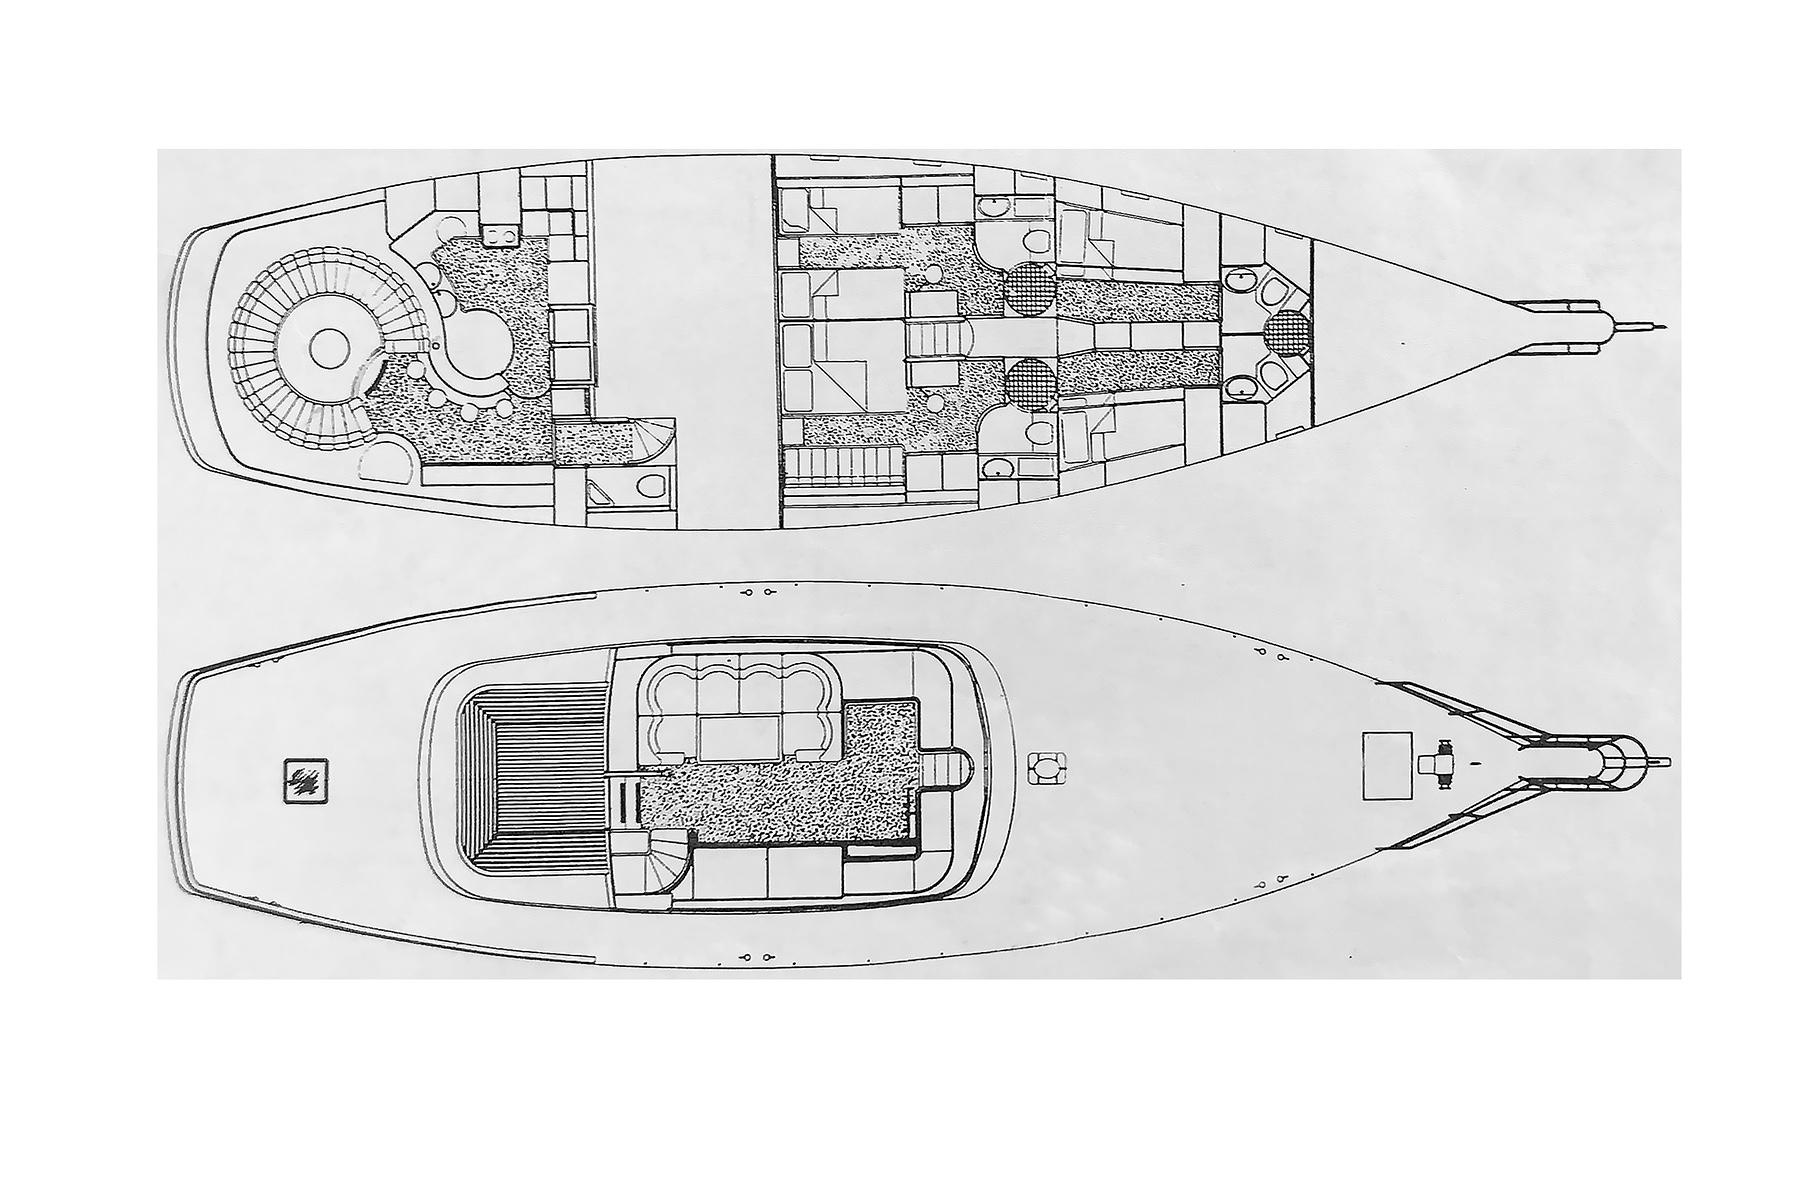 hight resolution of 76 jongert interior and deck layout